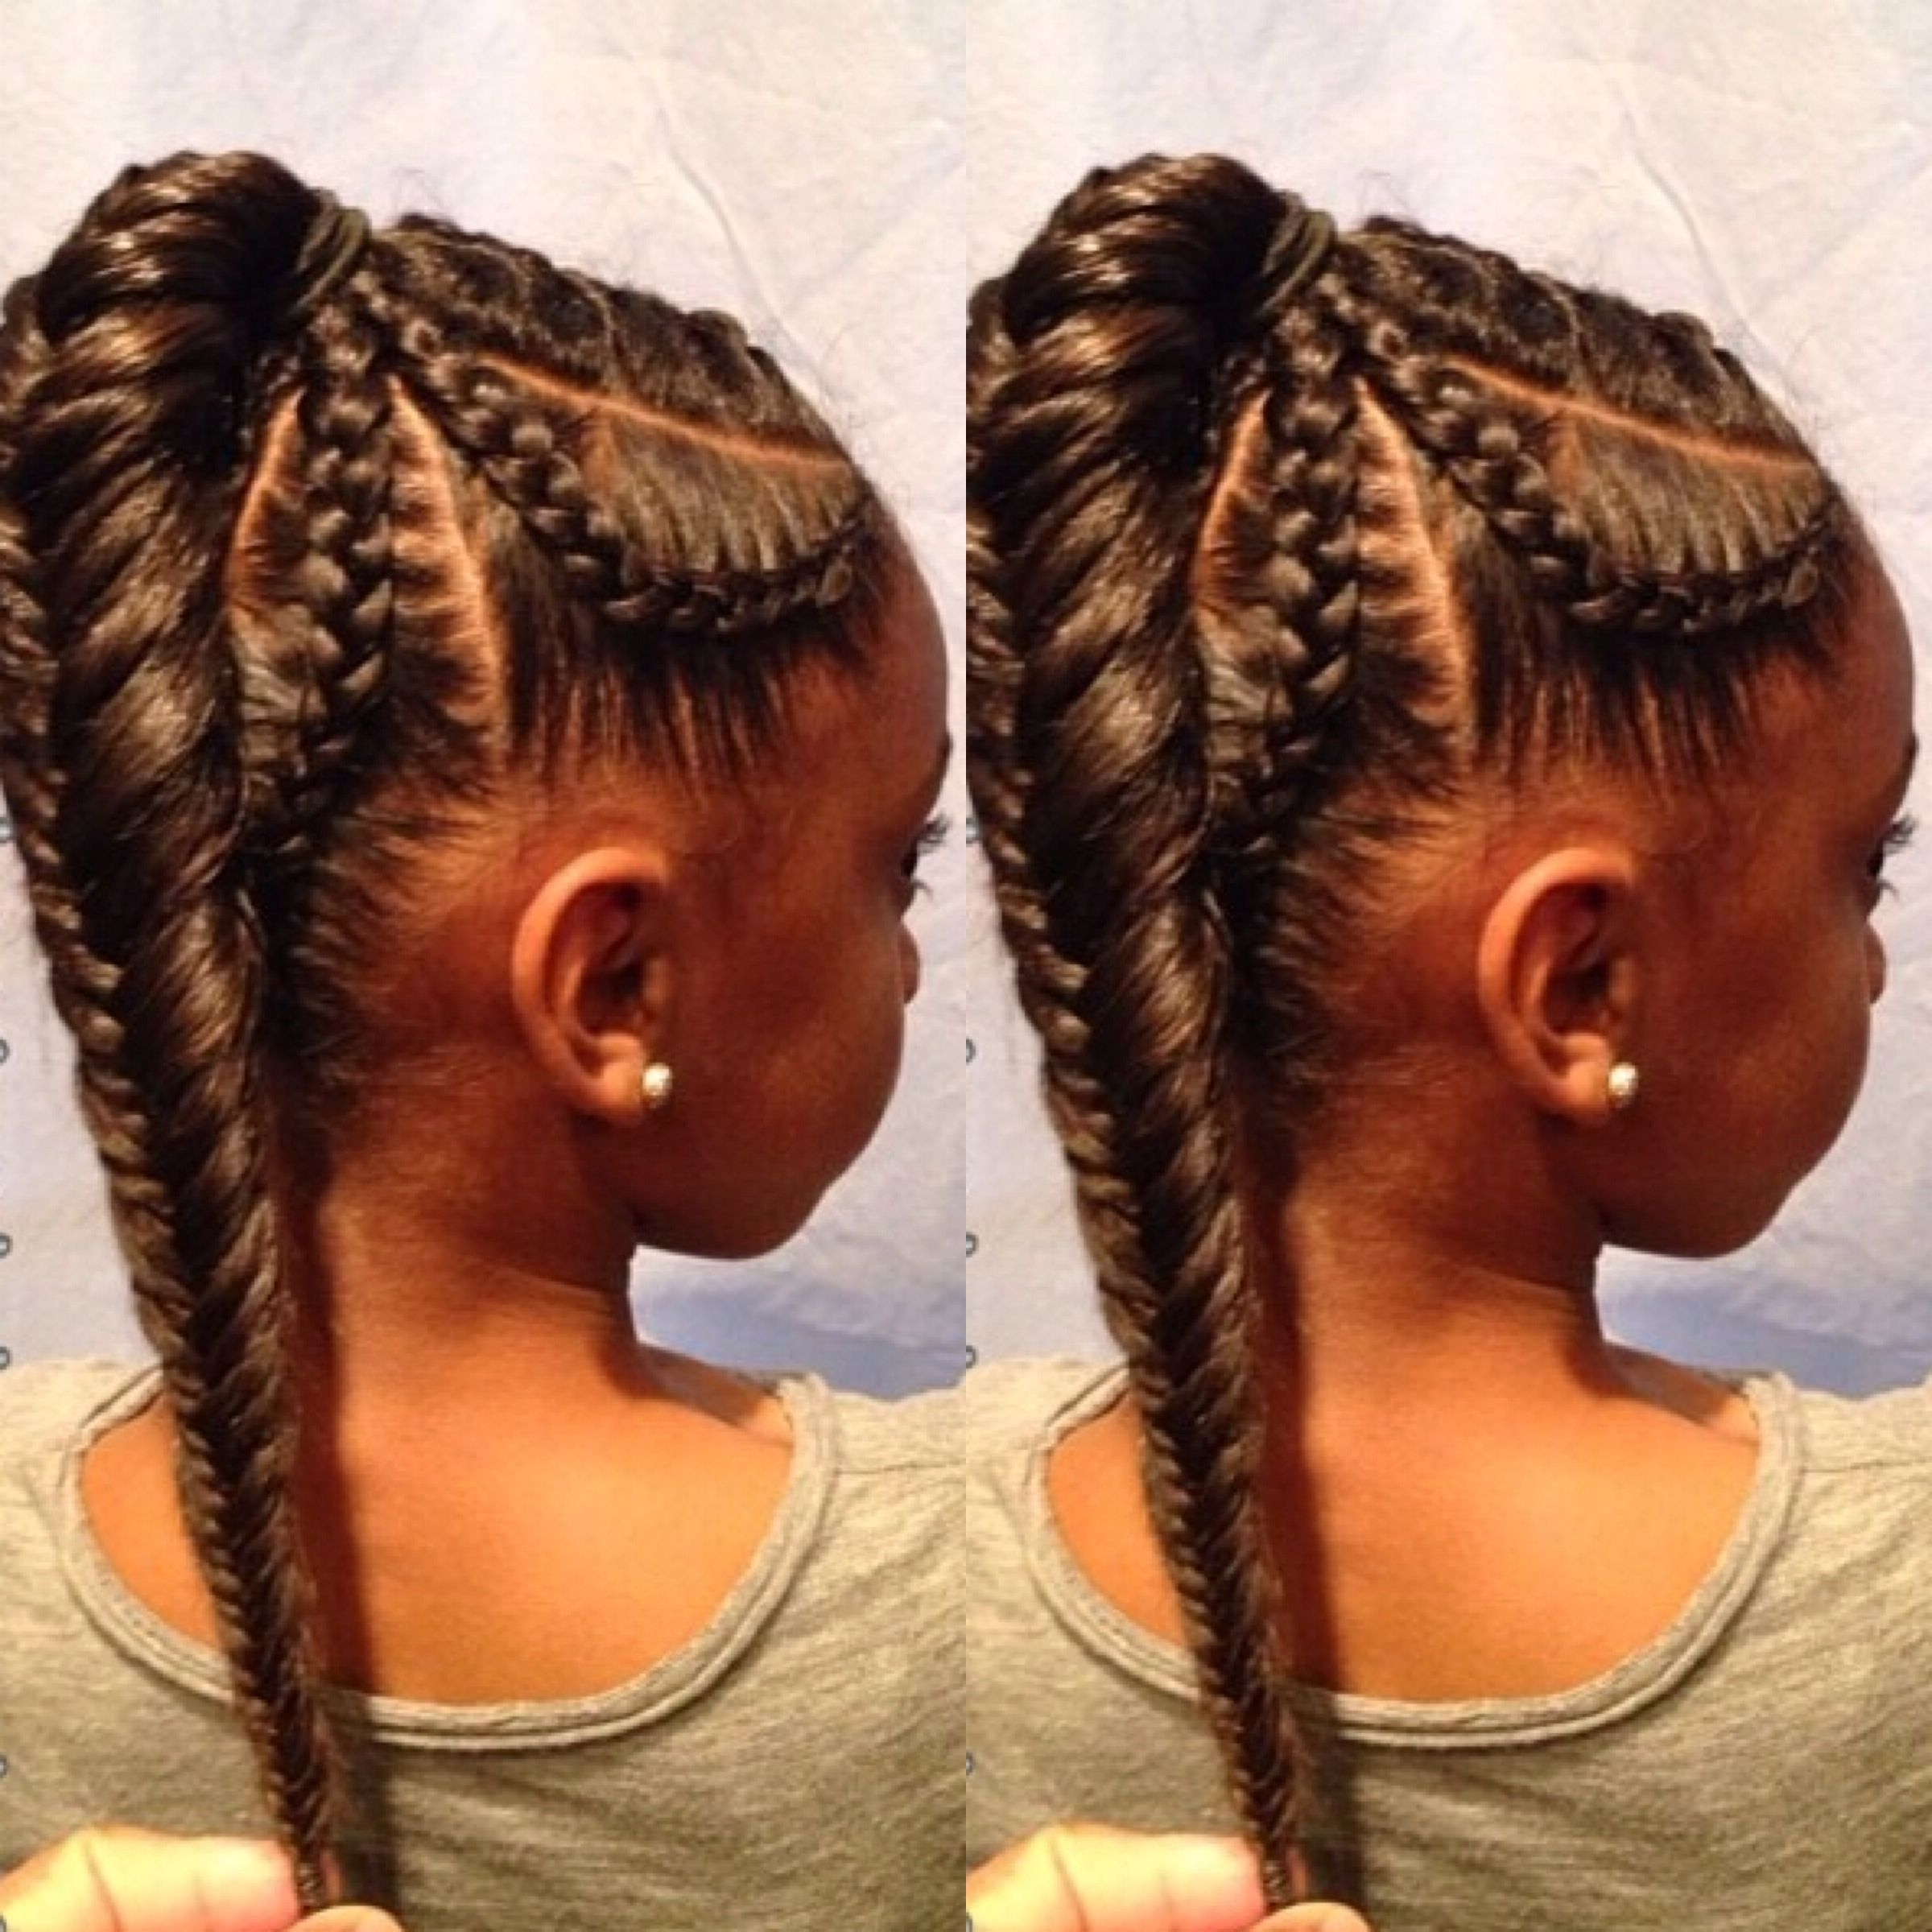 70 Best Black Braided Hairstyles That Turn Heads (View 2 of 20)